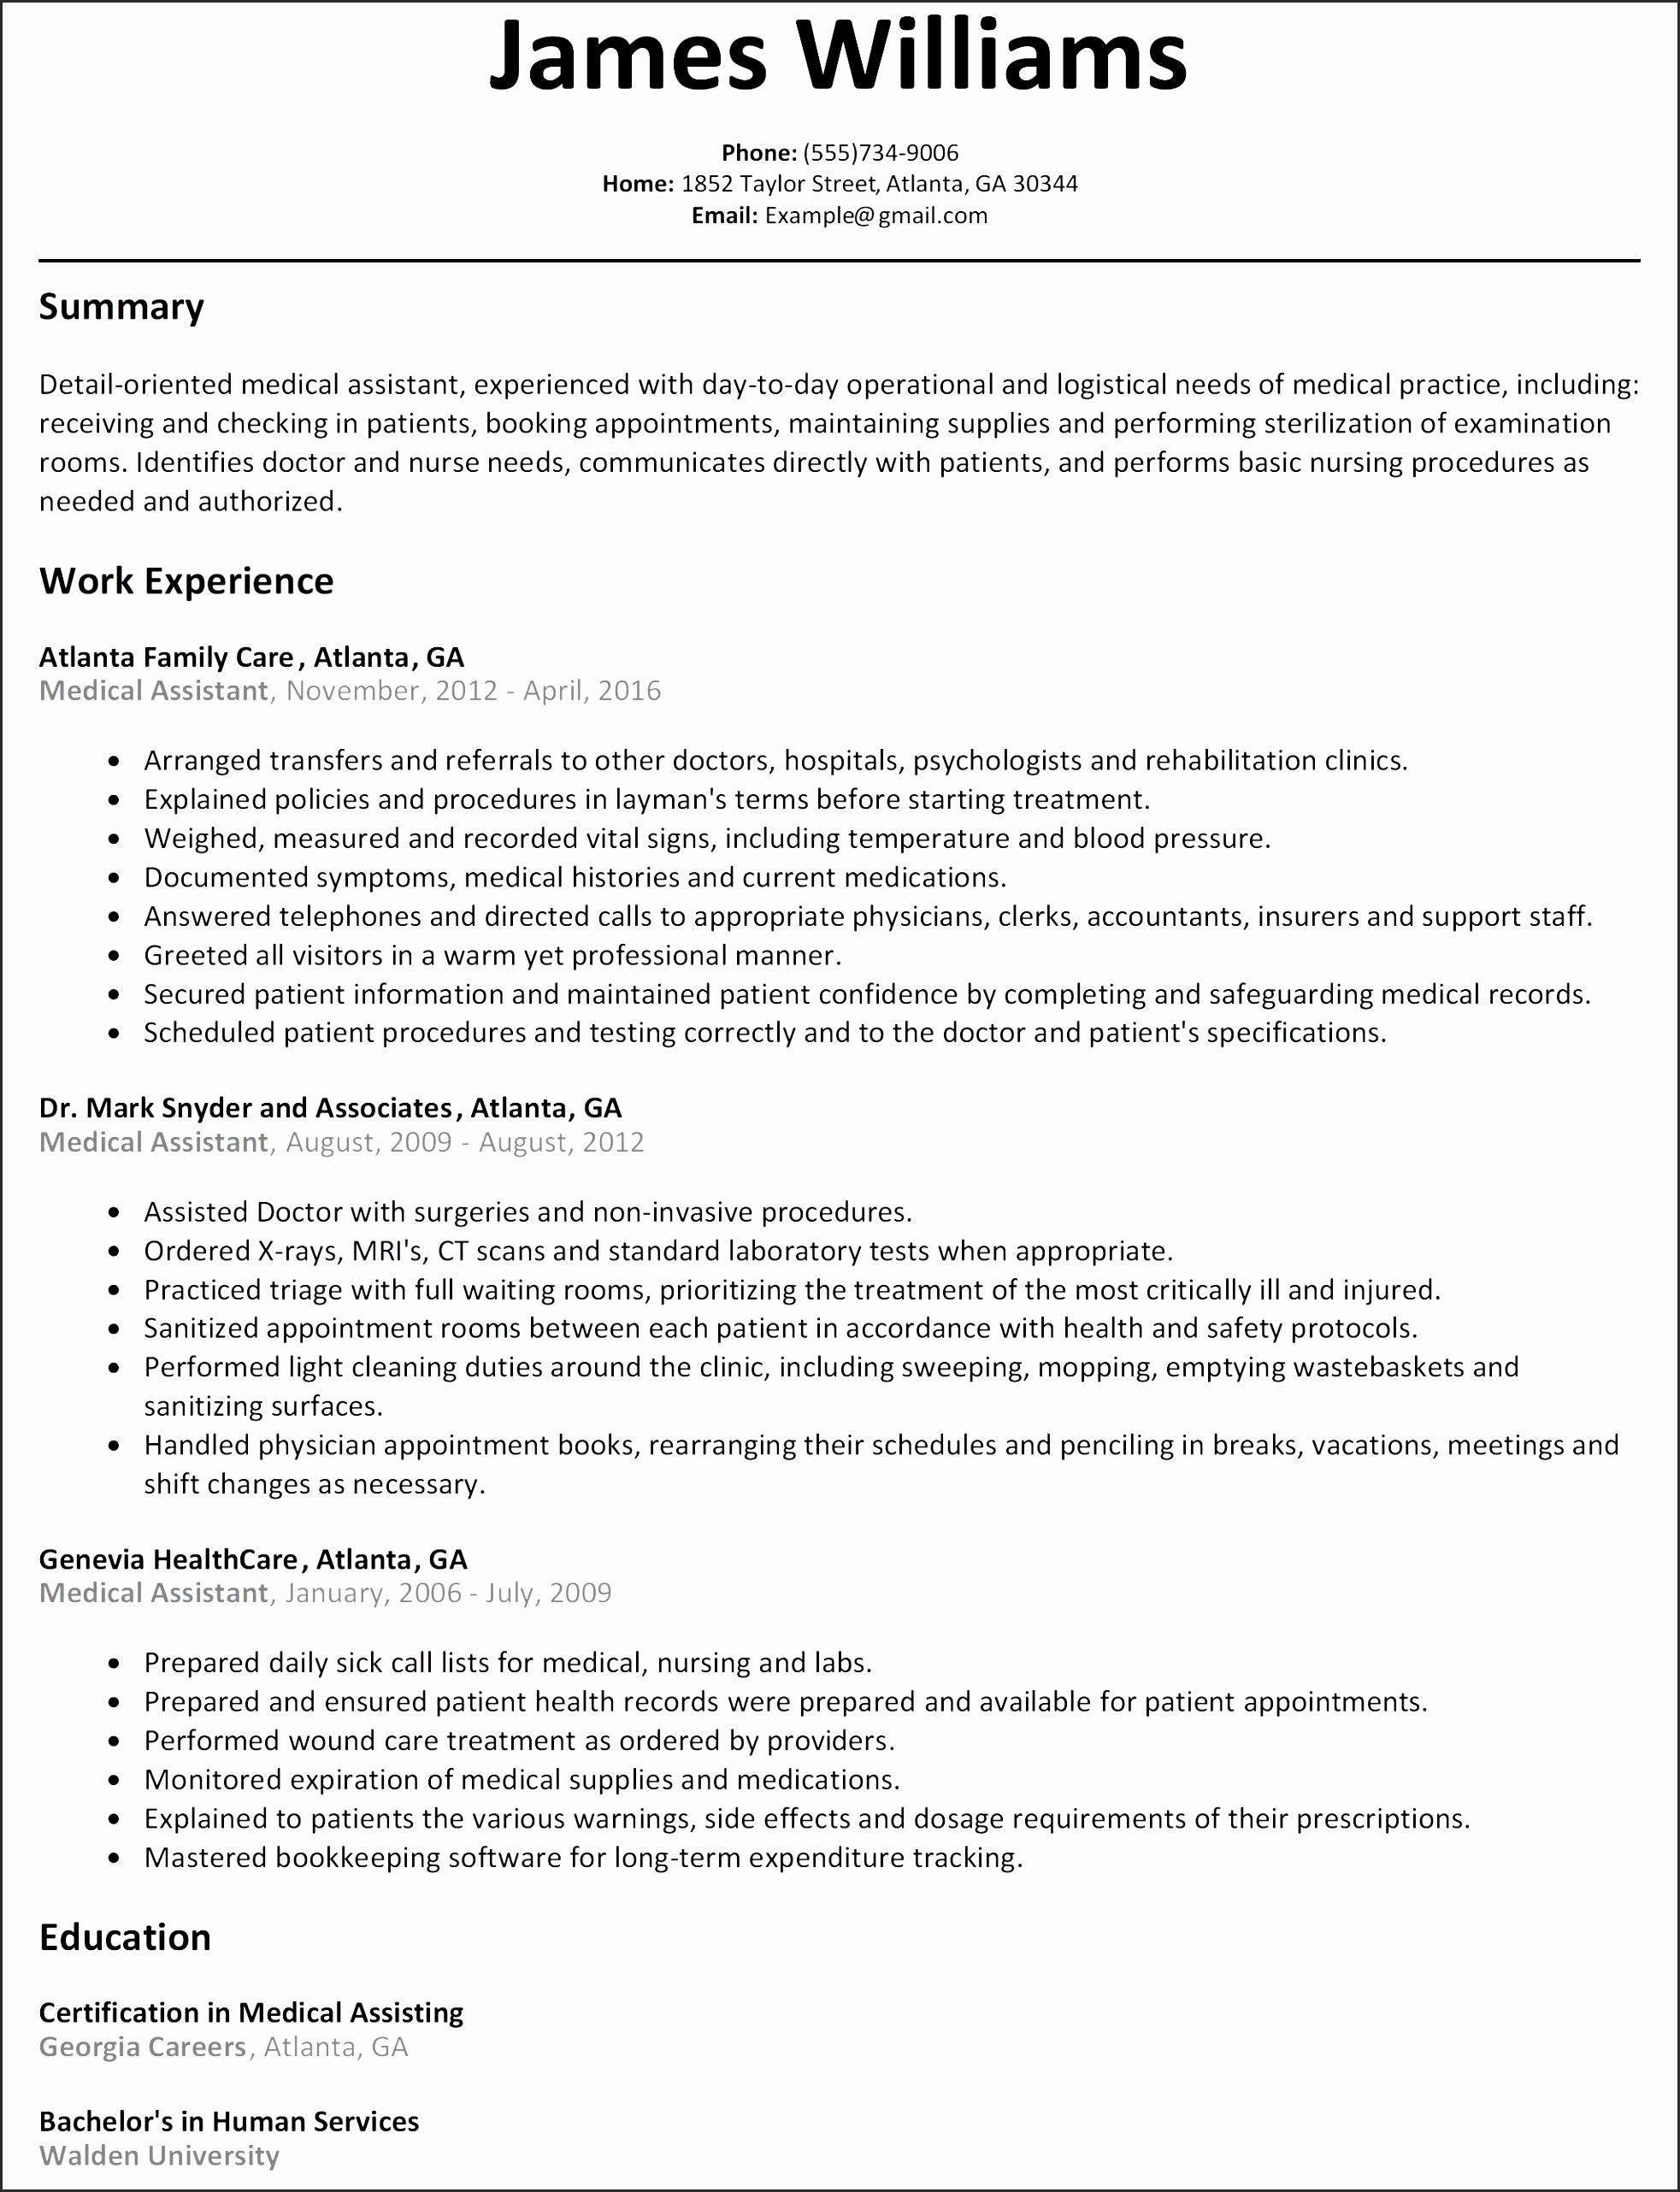 19 Sample Resume Templates Word in 2020 Medical